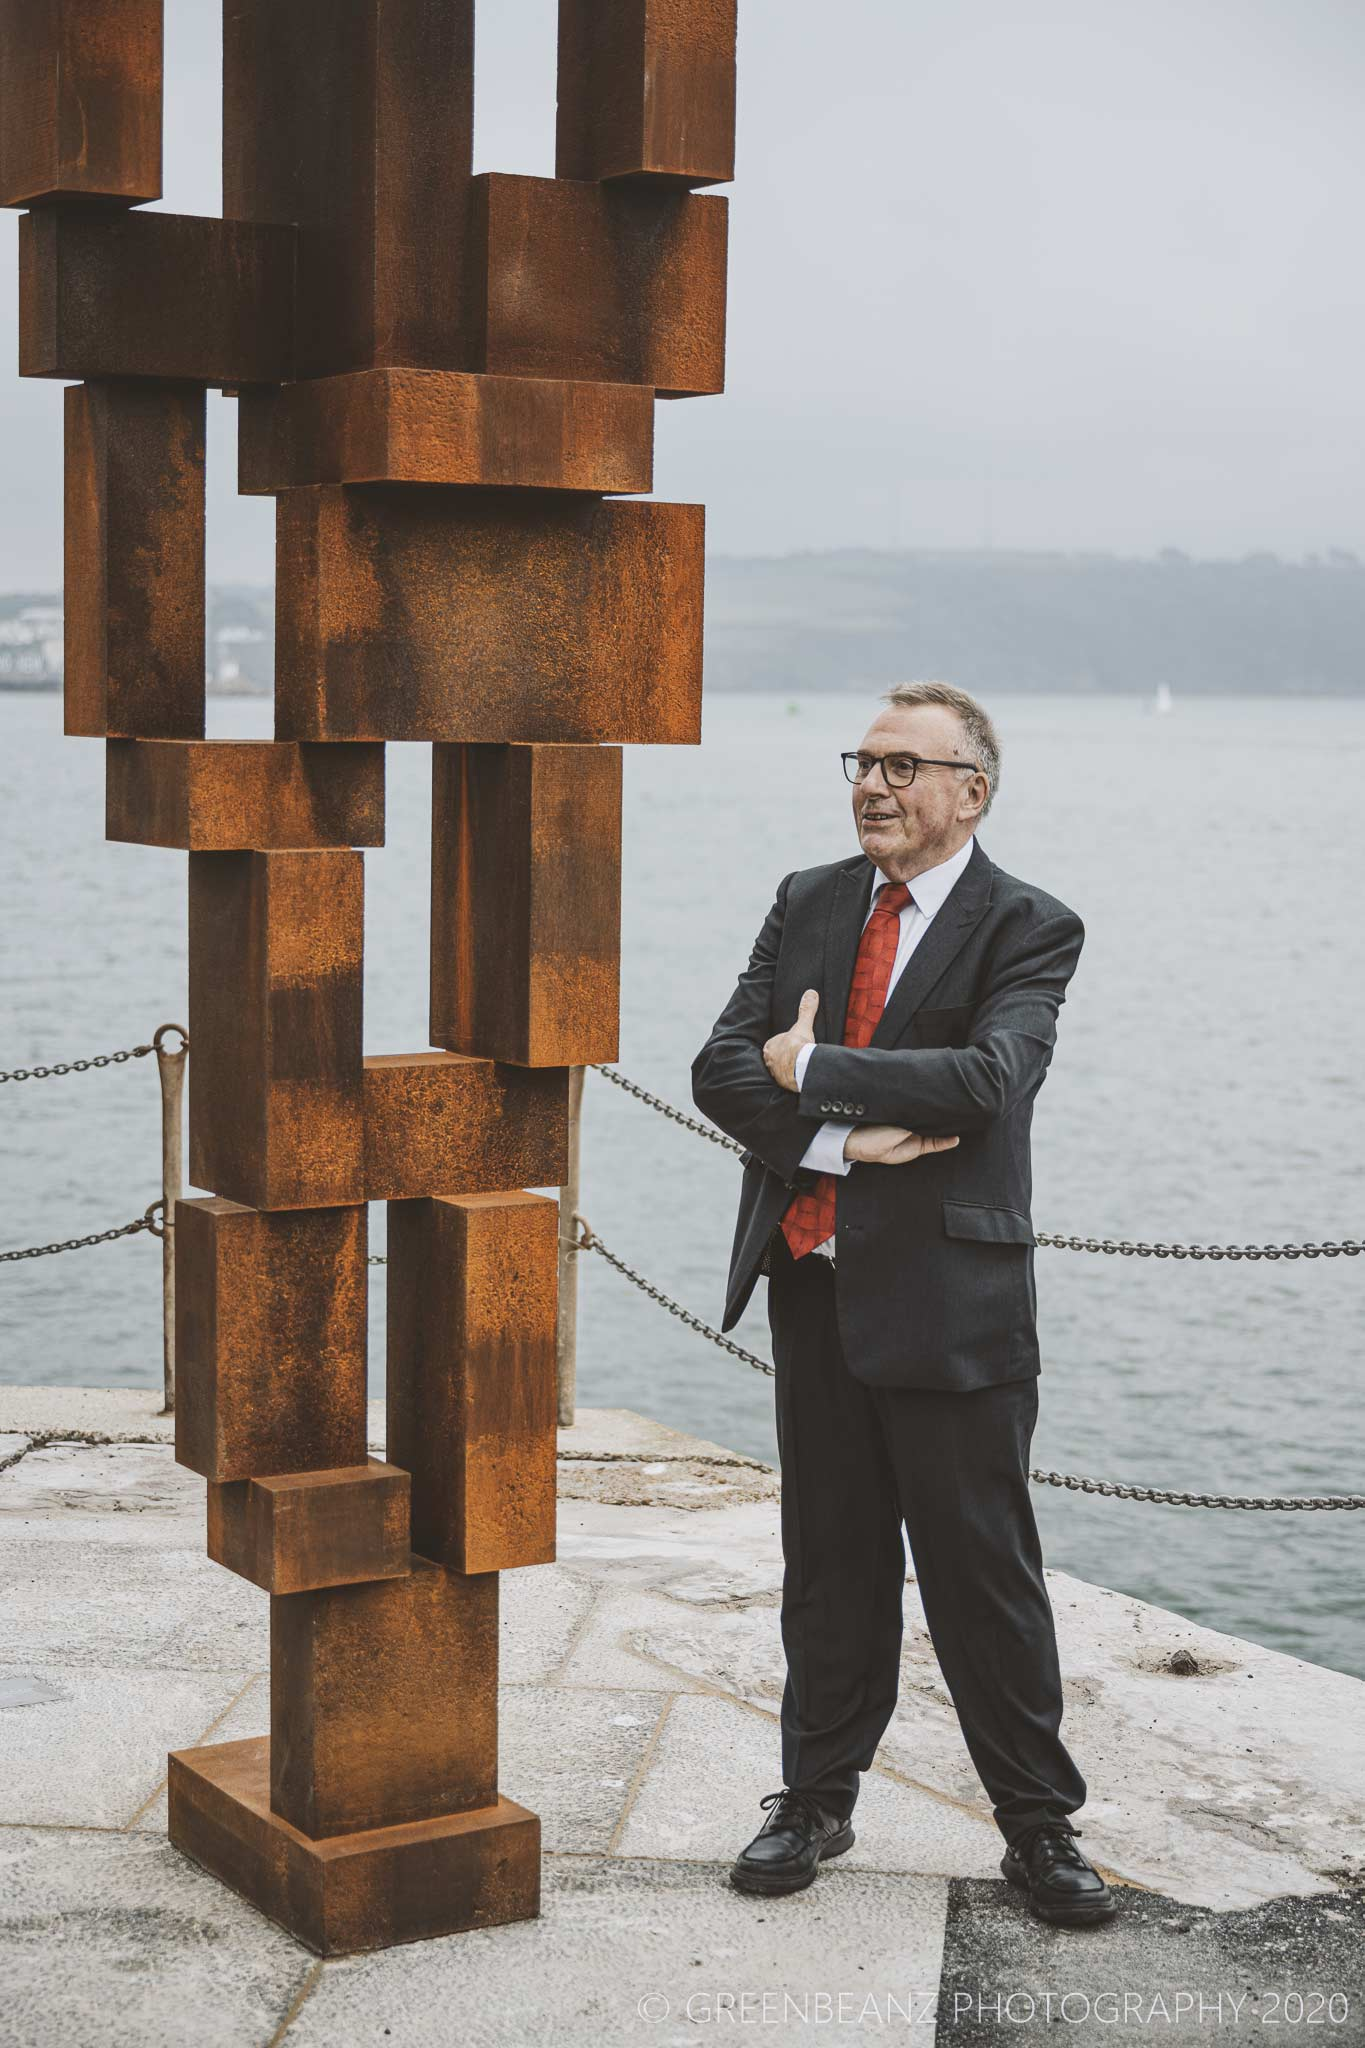 Tudor Evans stands next to Antony Gormleys sculpture in Plymouth